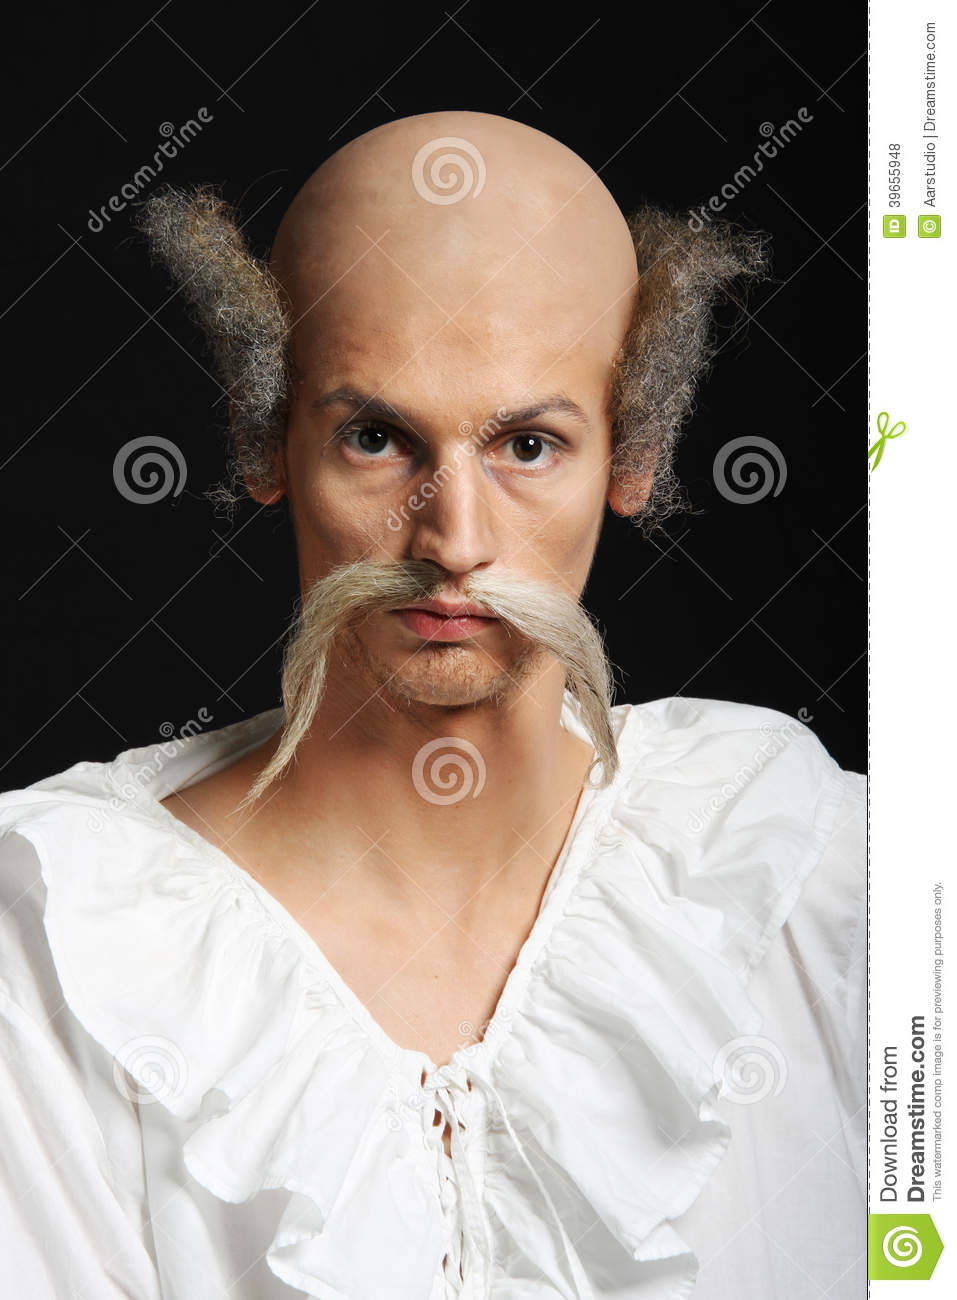 Hair On Almost Bald Man Clipart.